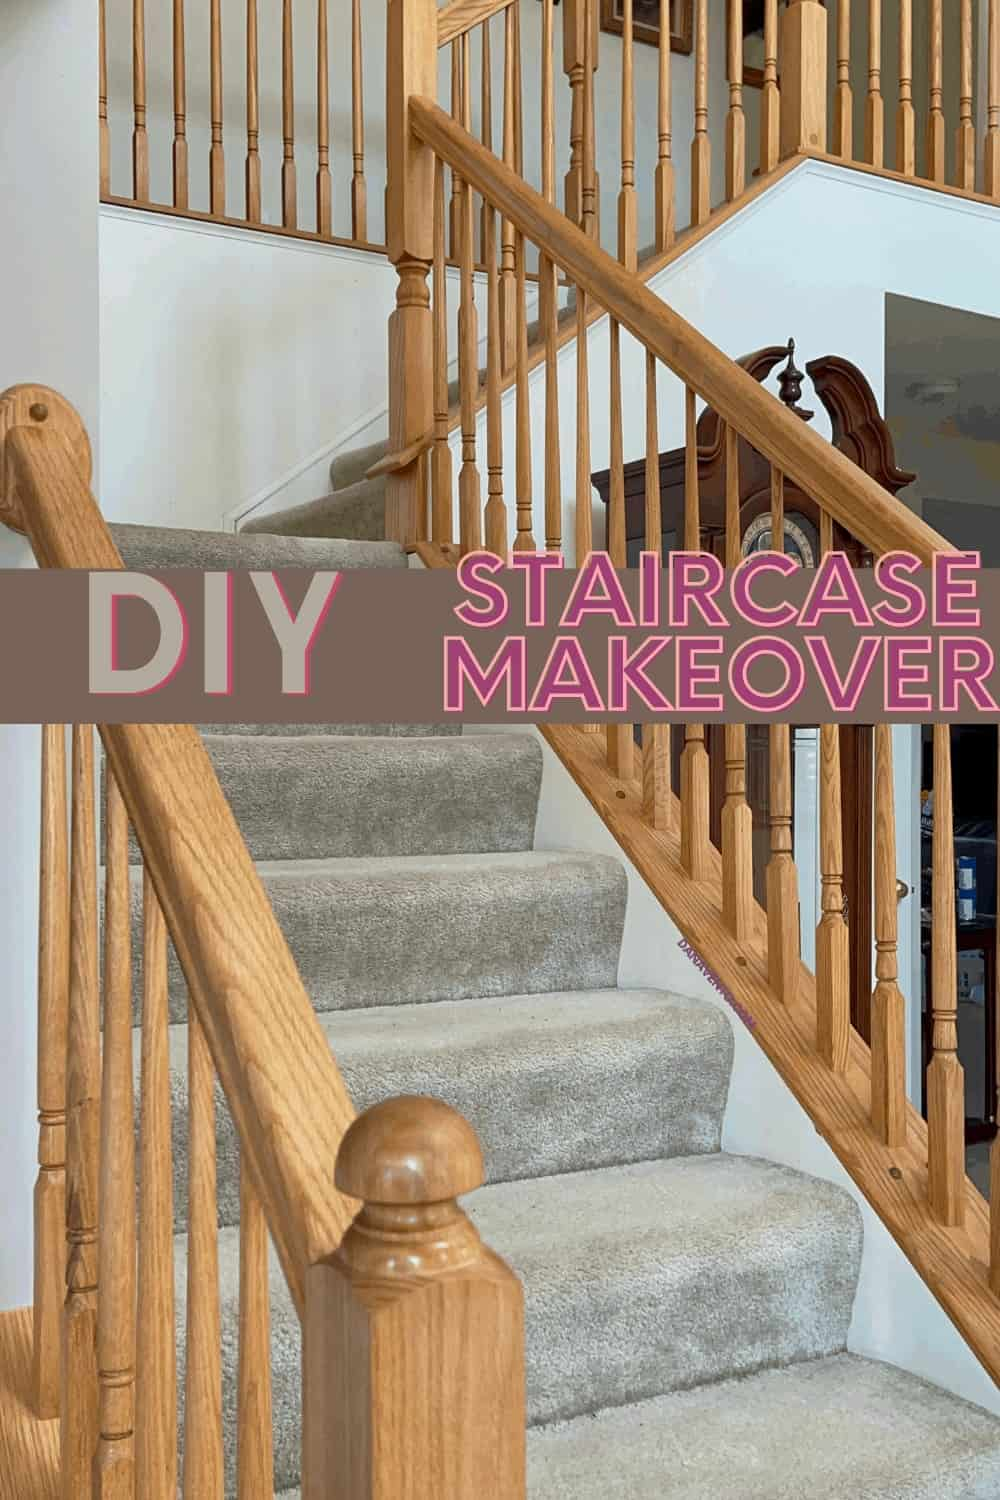 DIY Staircase Makeover BEFORE the makeover